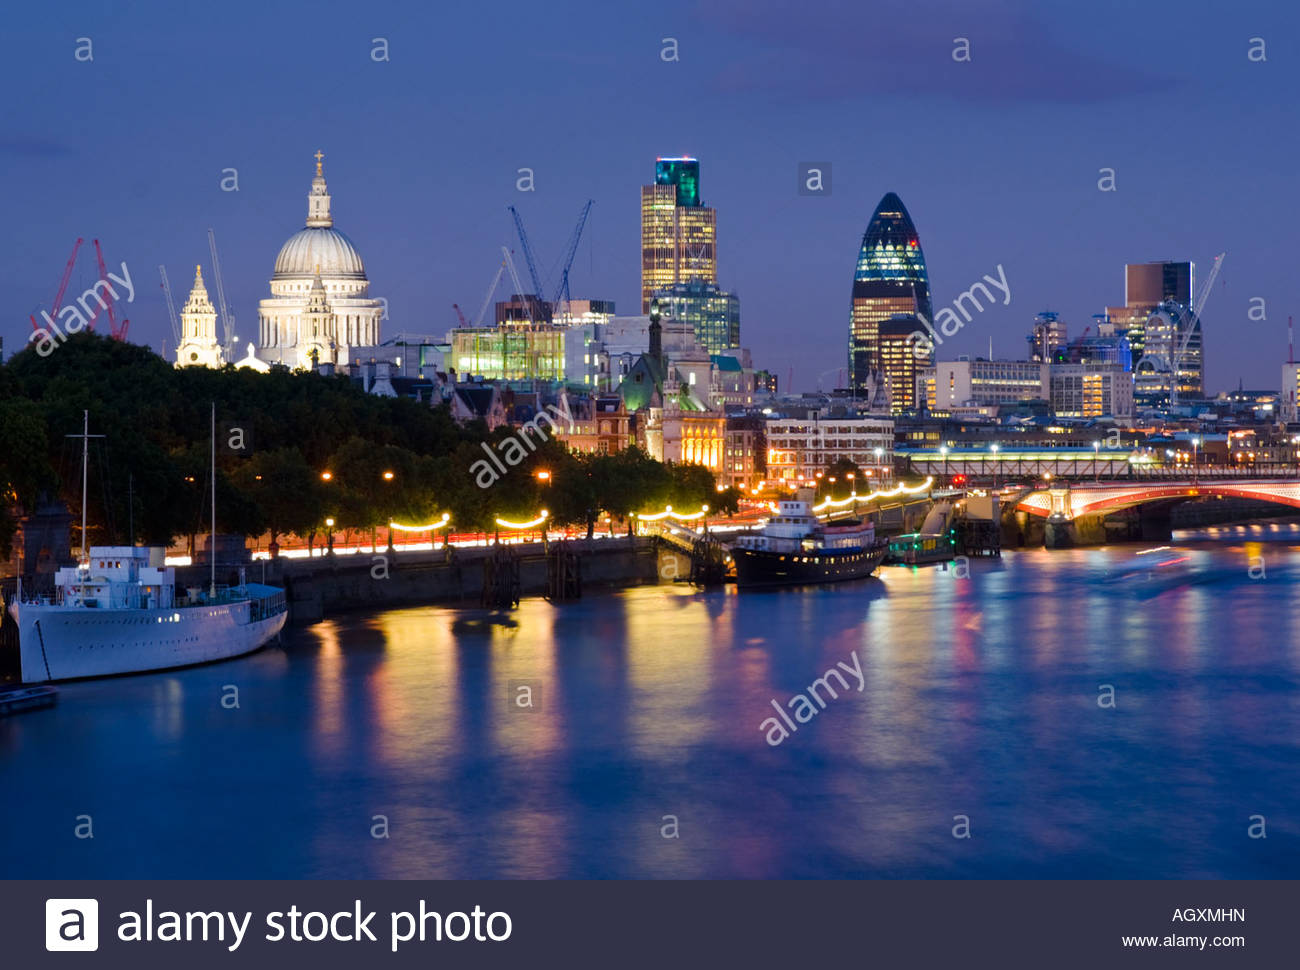 The City of London and the river Thames, London, England. Stock Photo